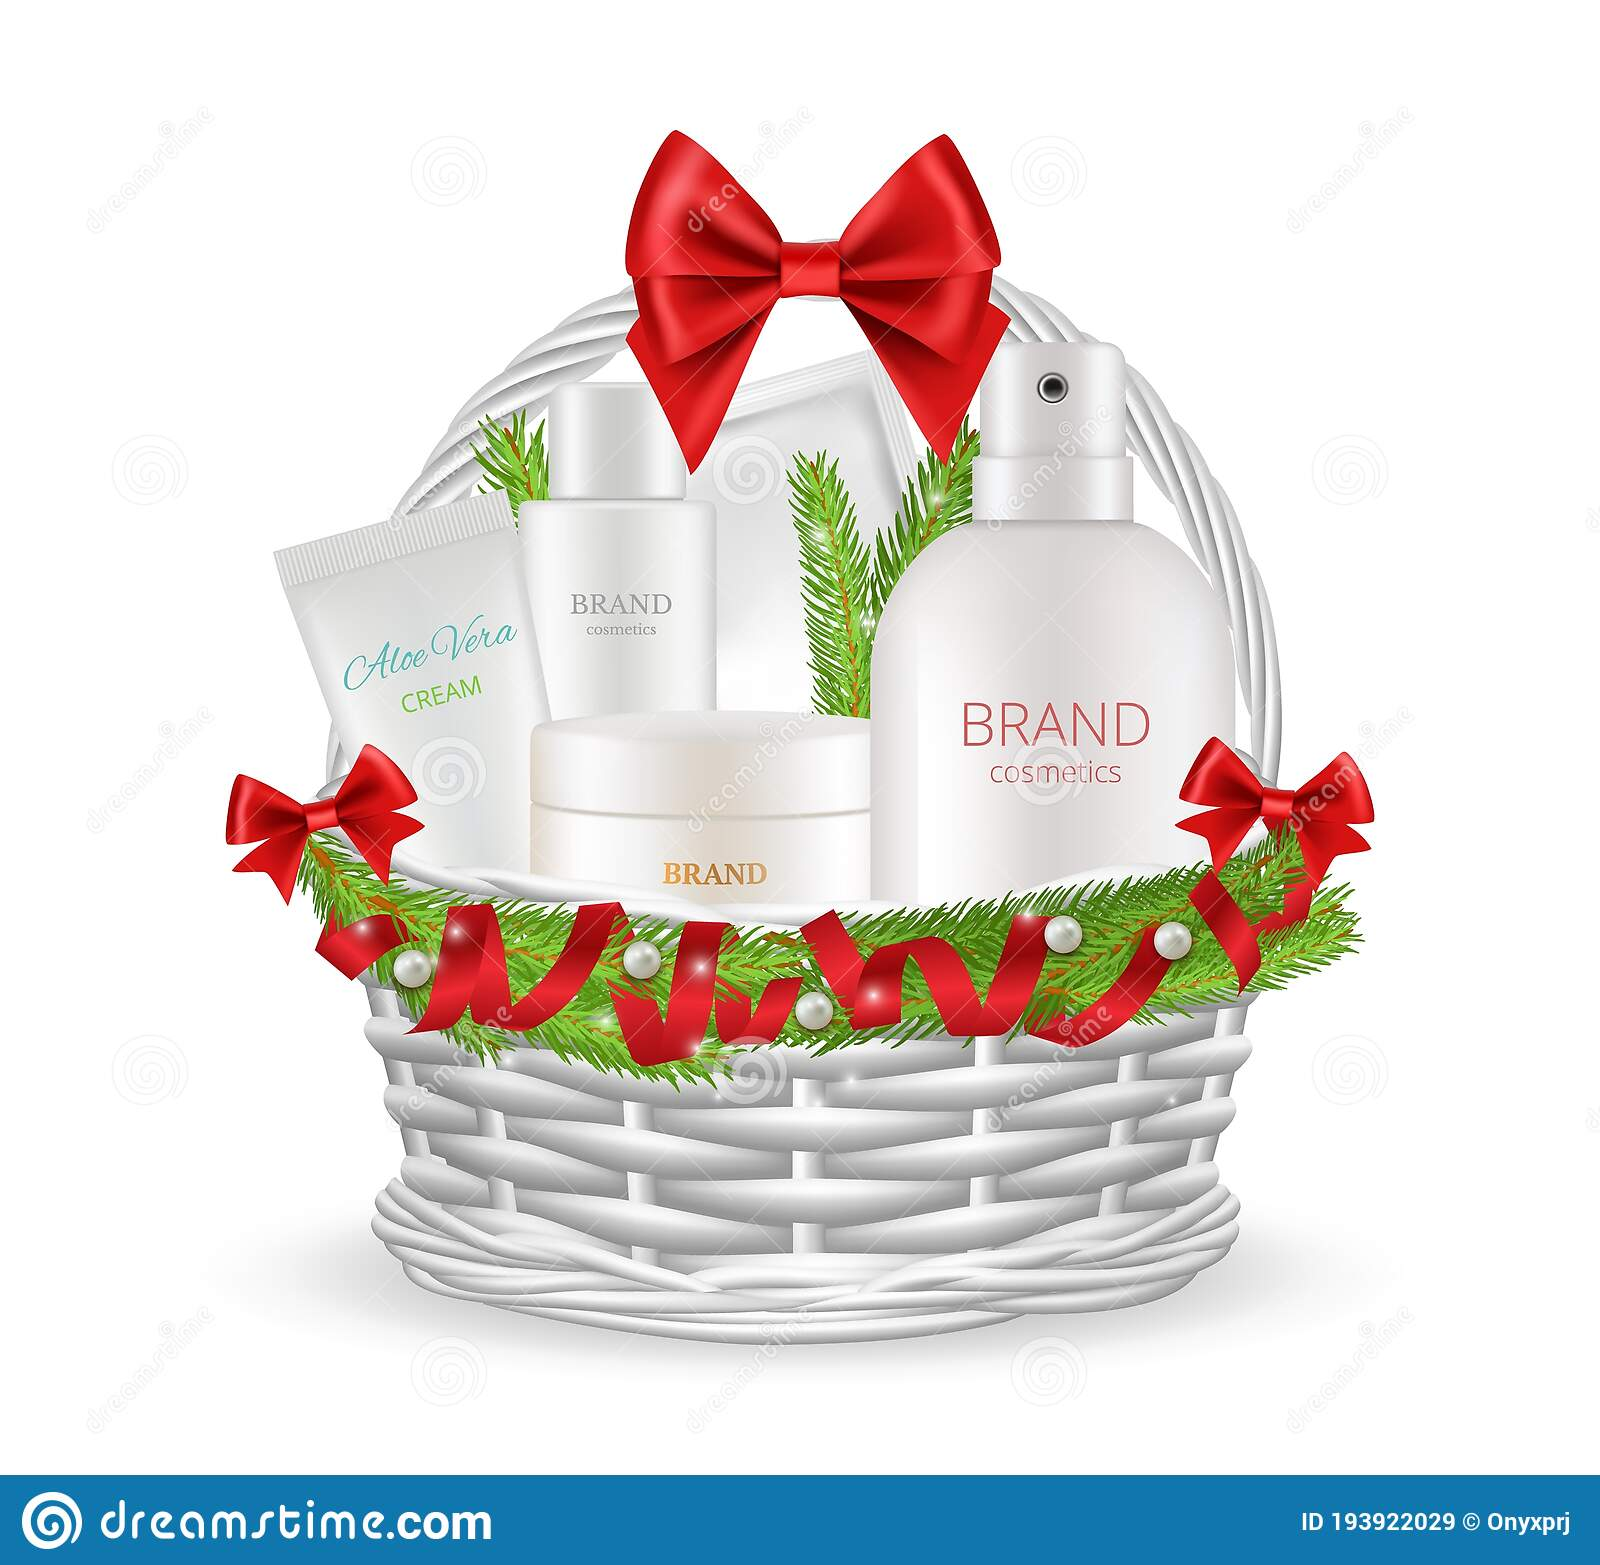 Holiday Gift Realistic Christmas Basket With Different Cosmetics Bottles Skin Care Products In New Year Packaging Stock Vector Illustration Of Female Care 193922029